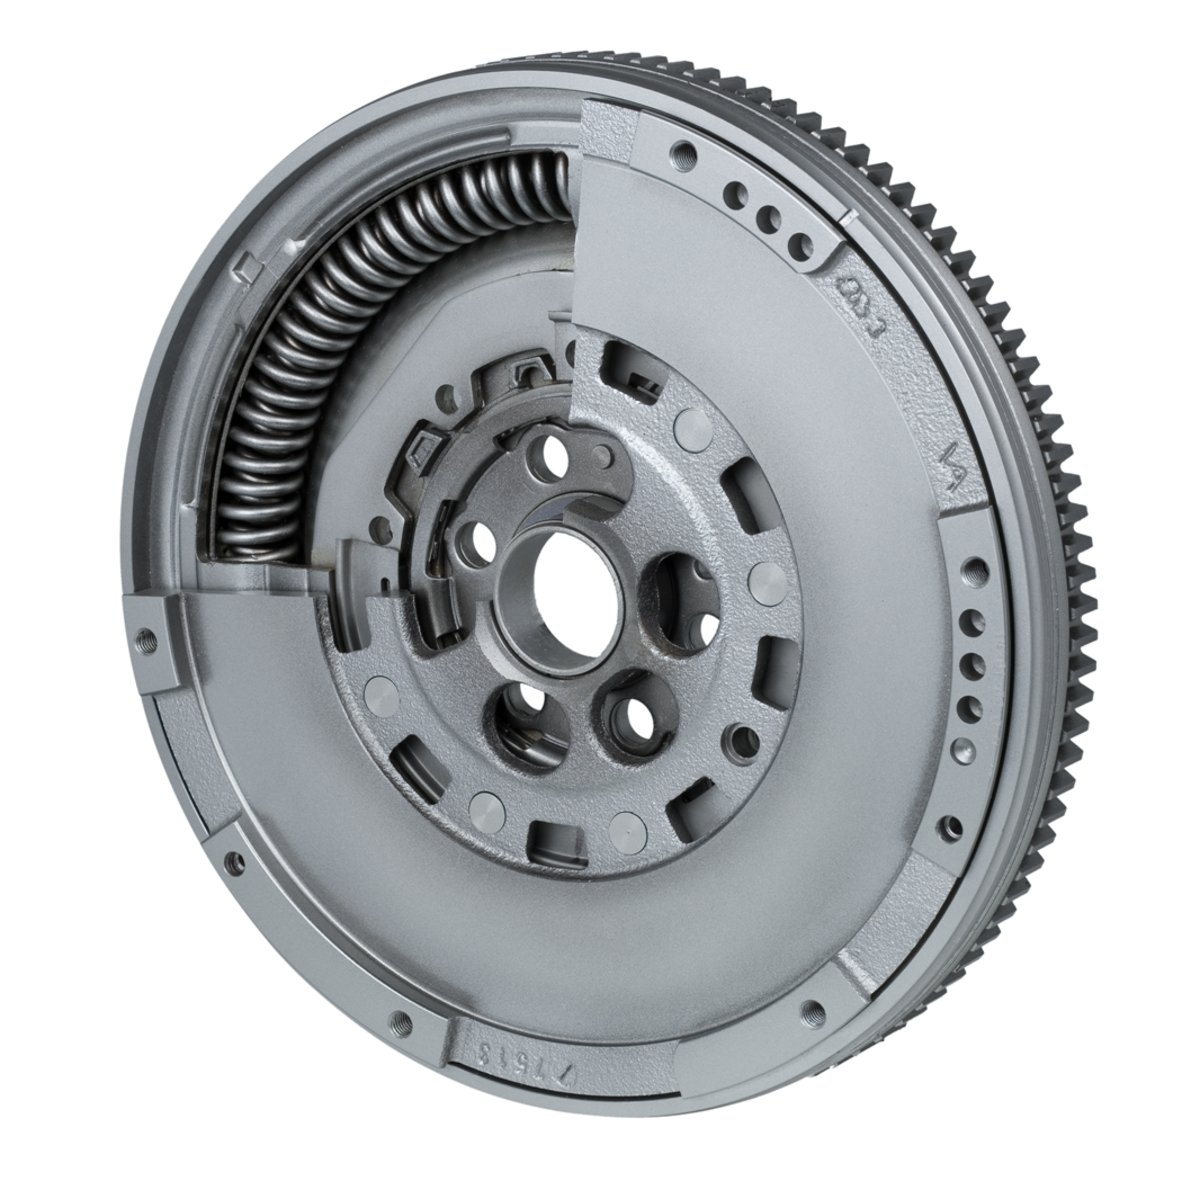 Dual mass flywheels are the source of many juddering problems incorrectly attributed to a DSG transmission.